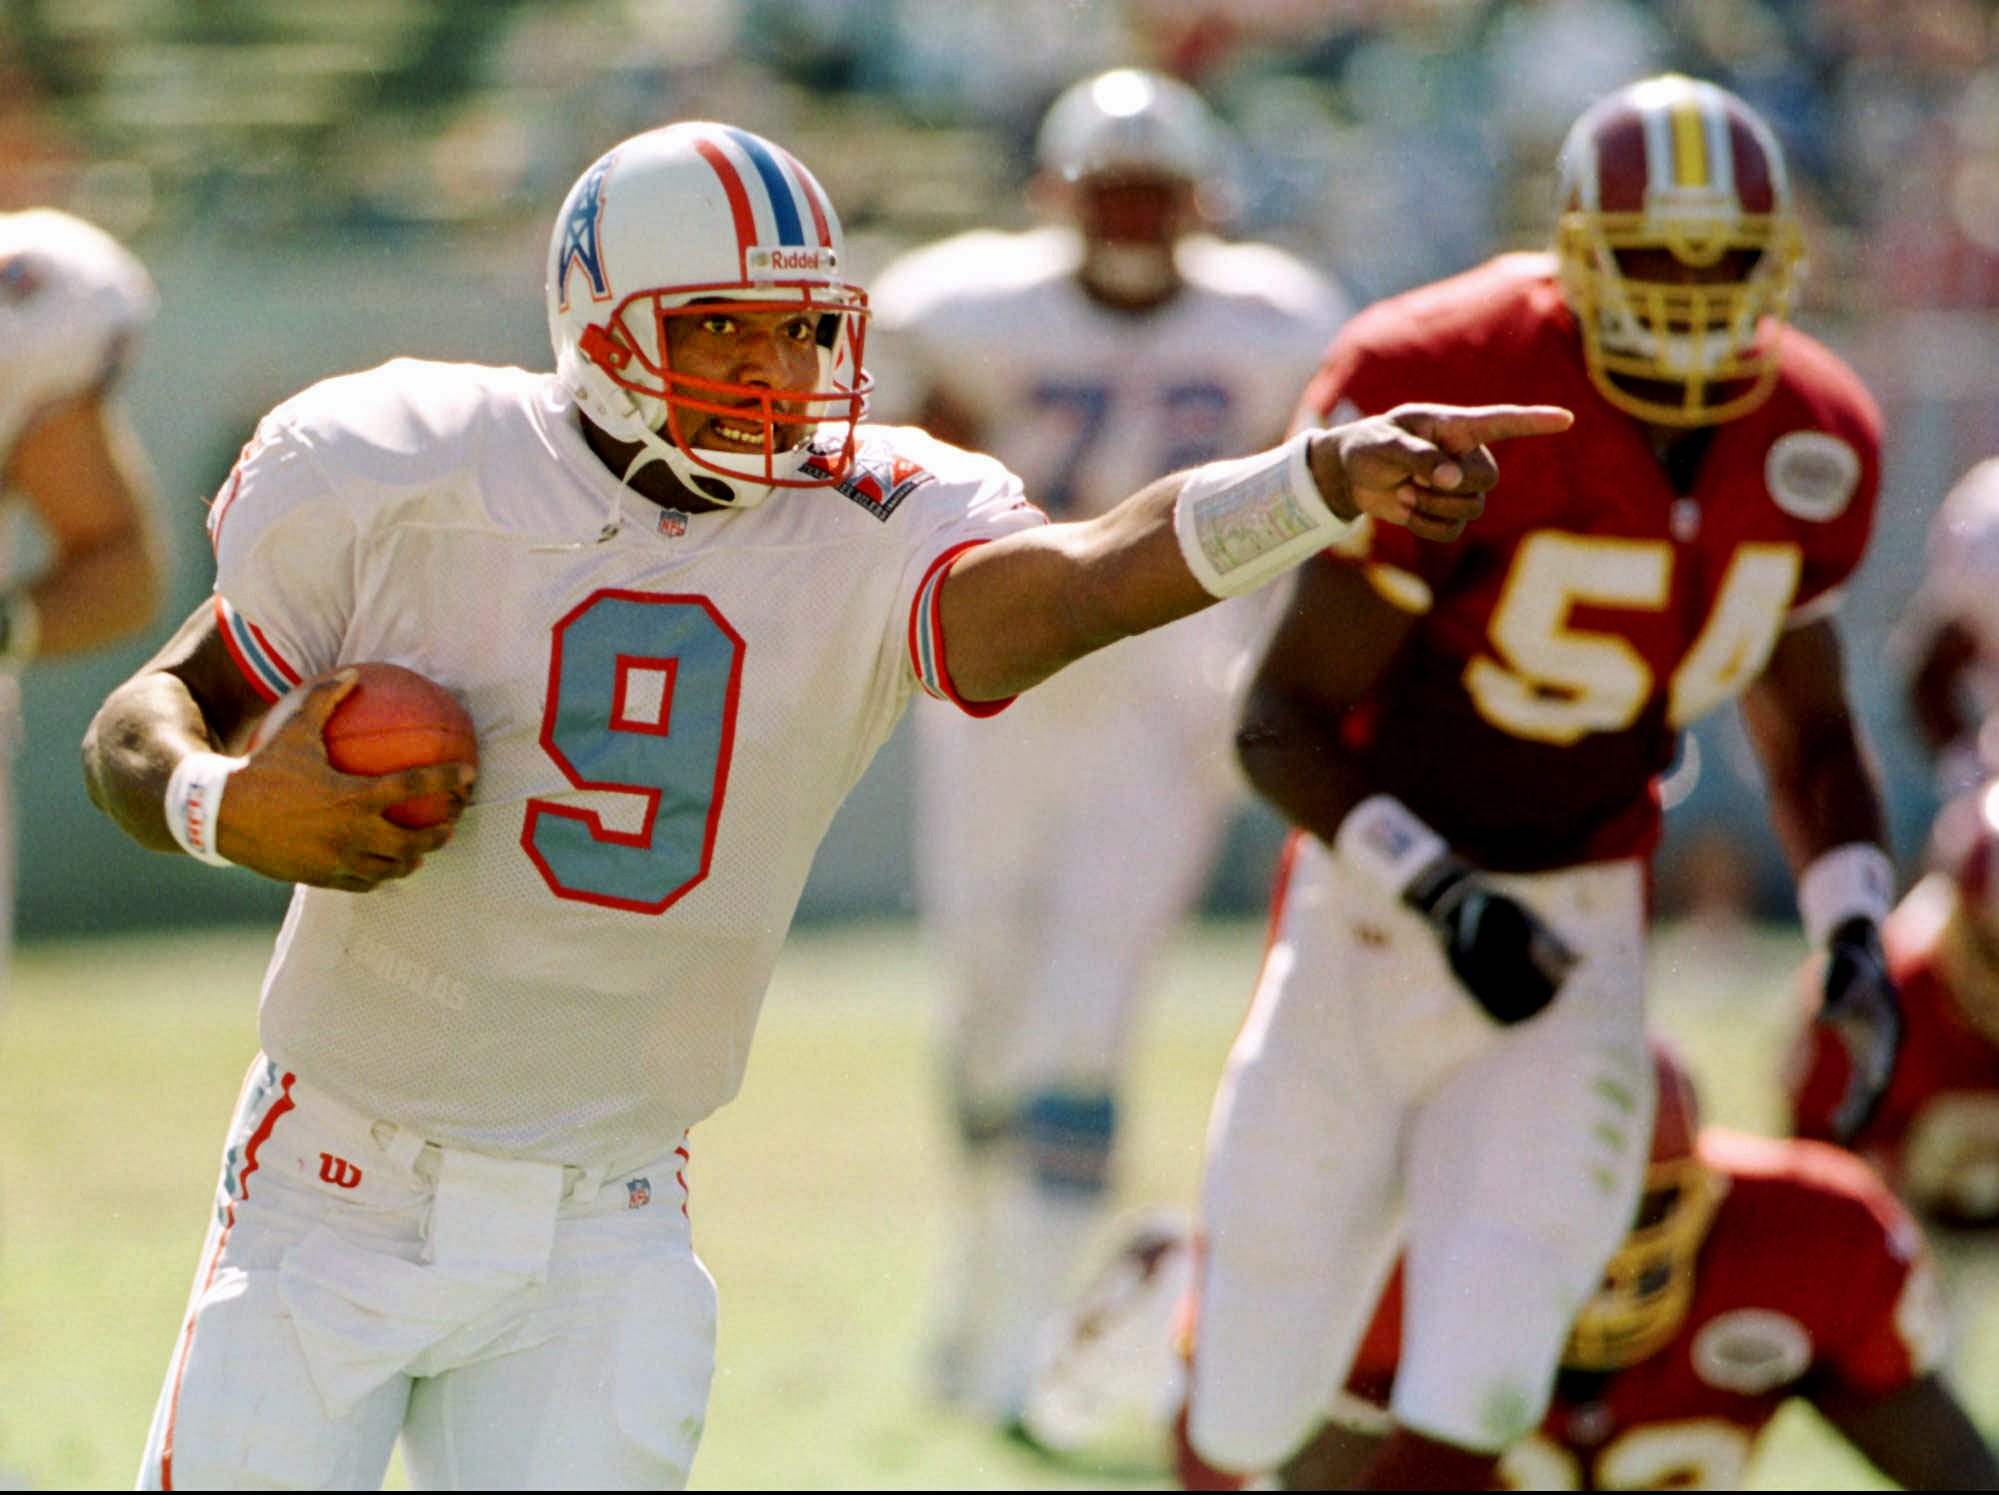 Tennessee Oilers quarterback Steve McNair directs a teammate as he runs for a two-yard touchdown in the second quarter against the Washington Redskins Oct. 19, 1997 in Memphis. McNair rushed for 53 yards and passed for 192 yards as Tennessee defeated Washington, 28-14.